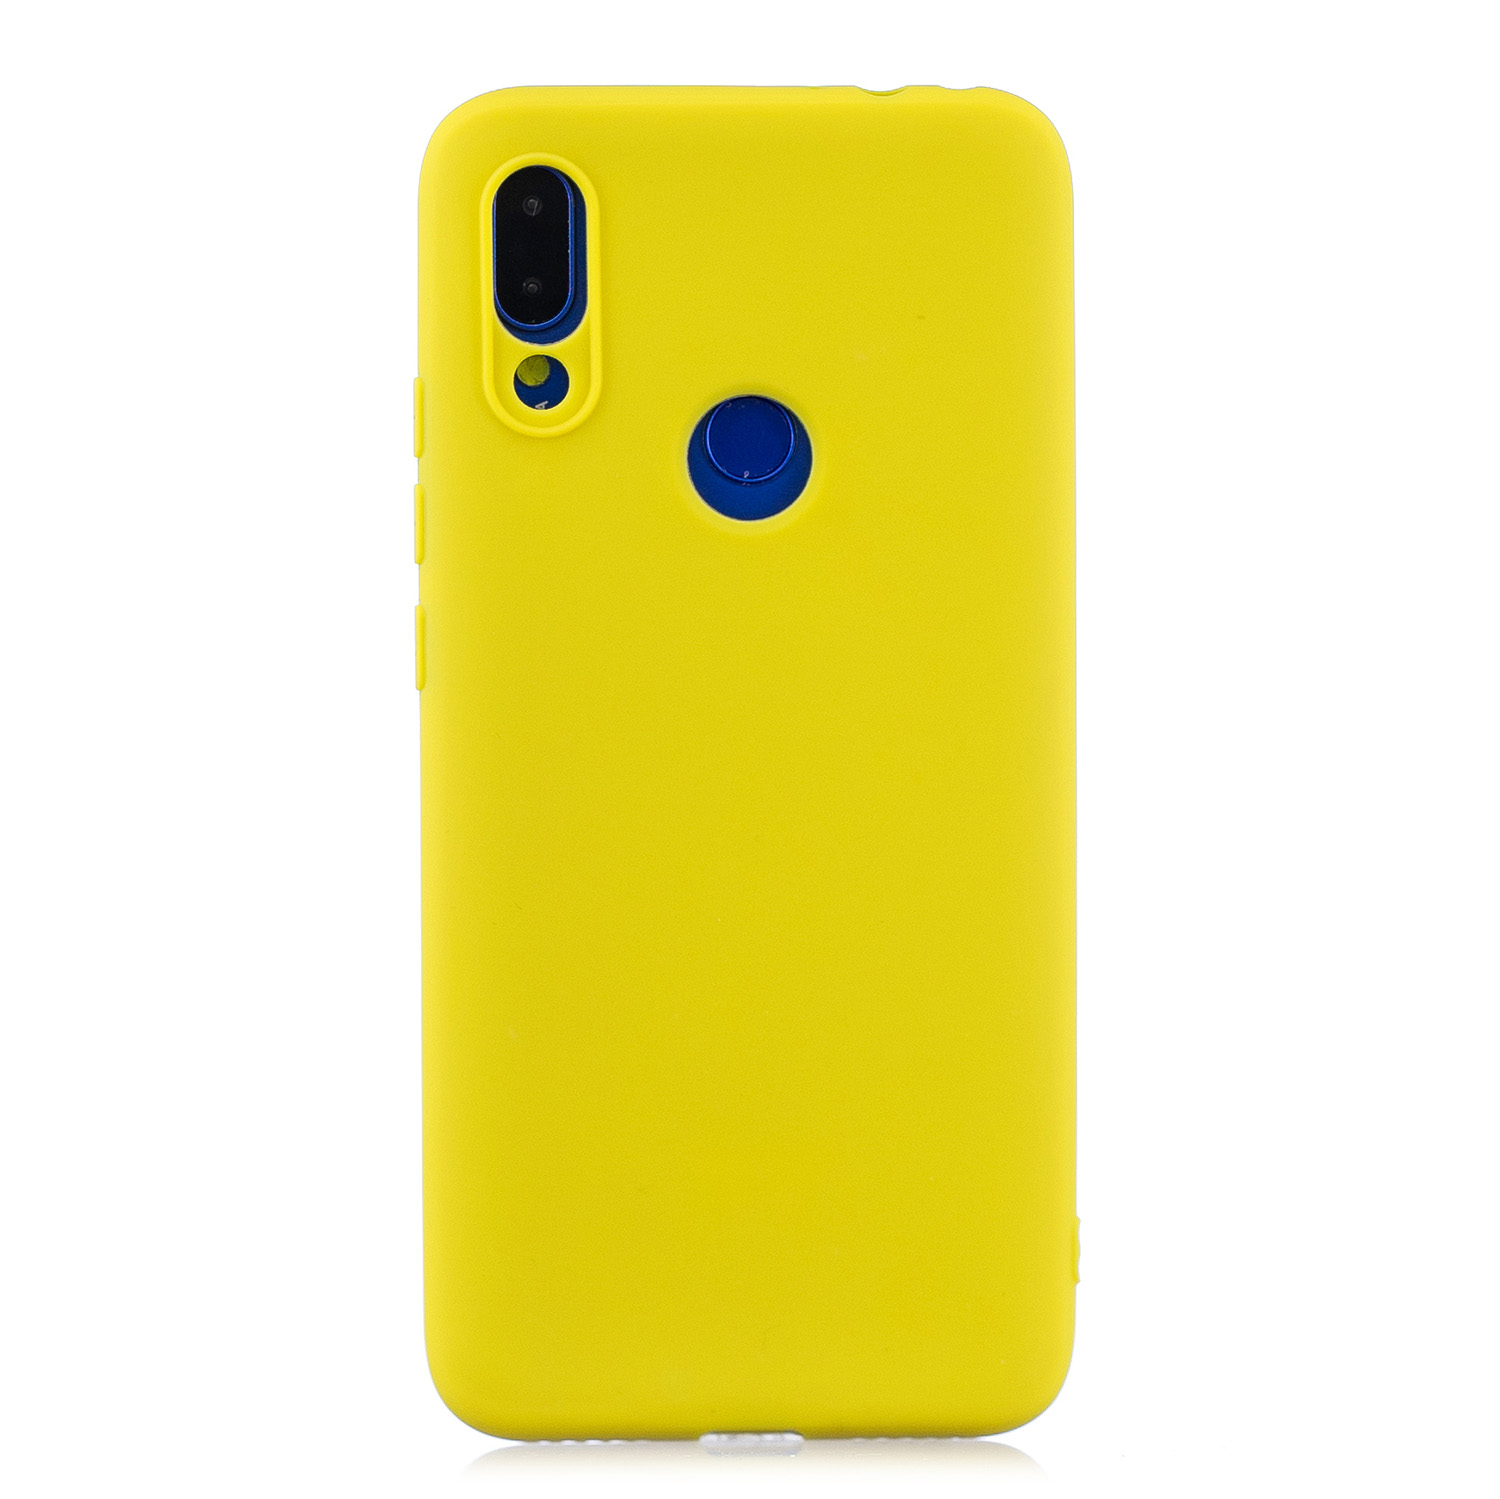 For Redmi 7 Lovely Candy Color Matte TPU Anti-scratch Non-slip Protective Cover Back Case yellow